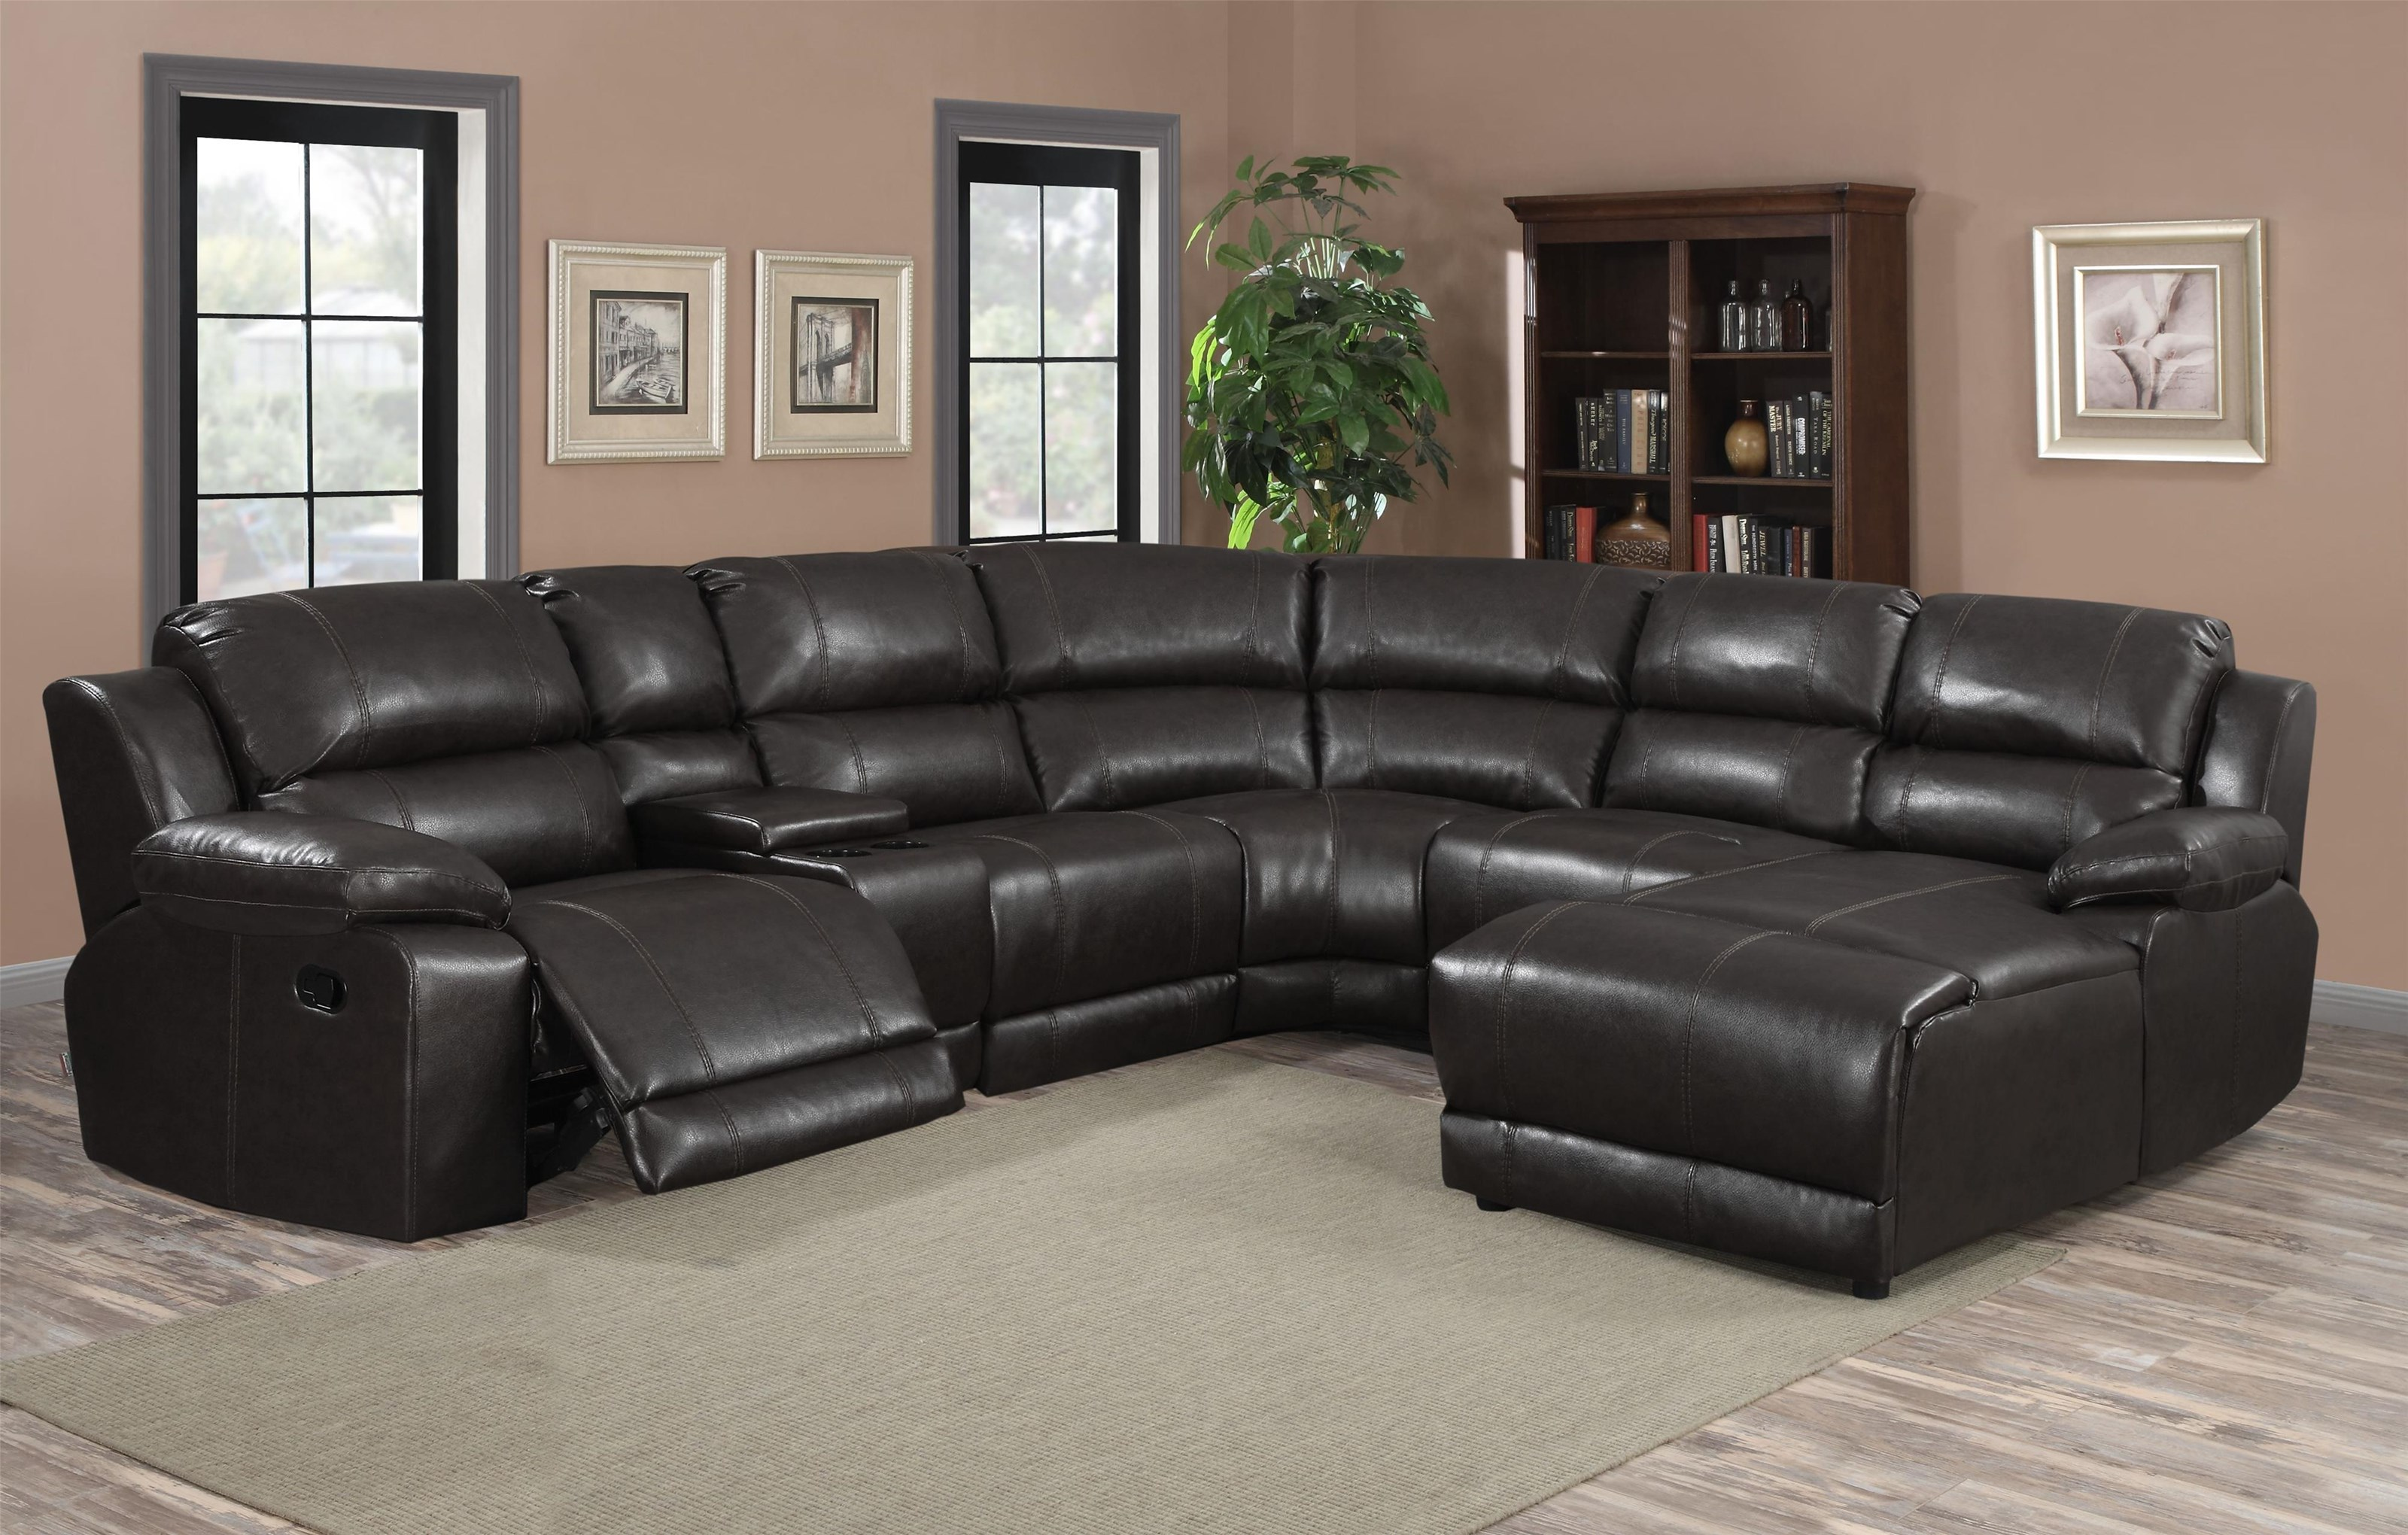 FW212 6 PC Charcoal Sectional by Lifestyle at Furniture Fair - North Carolina